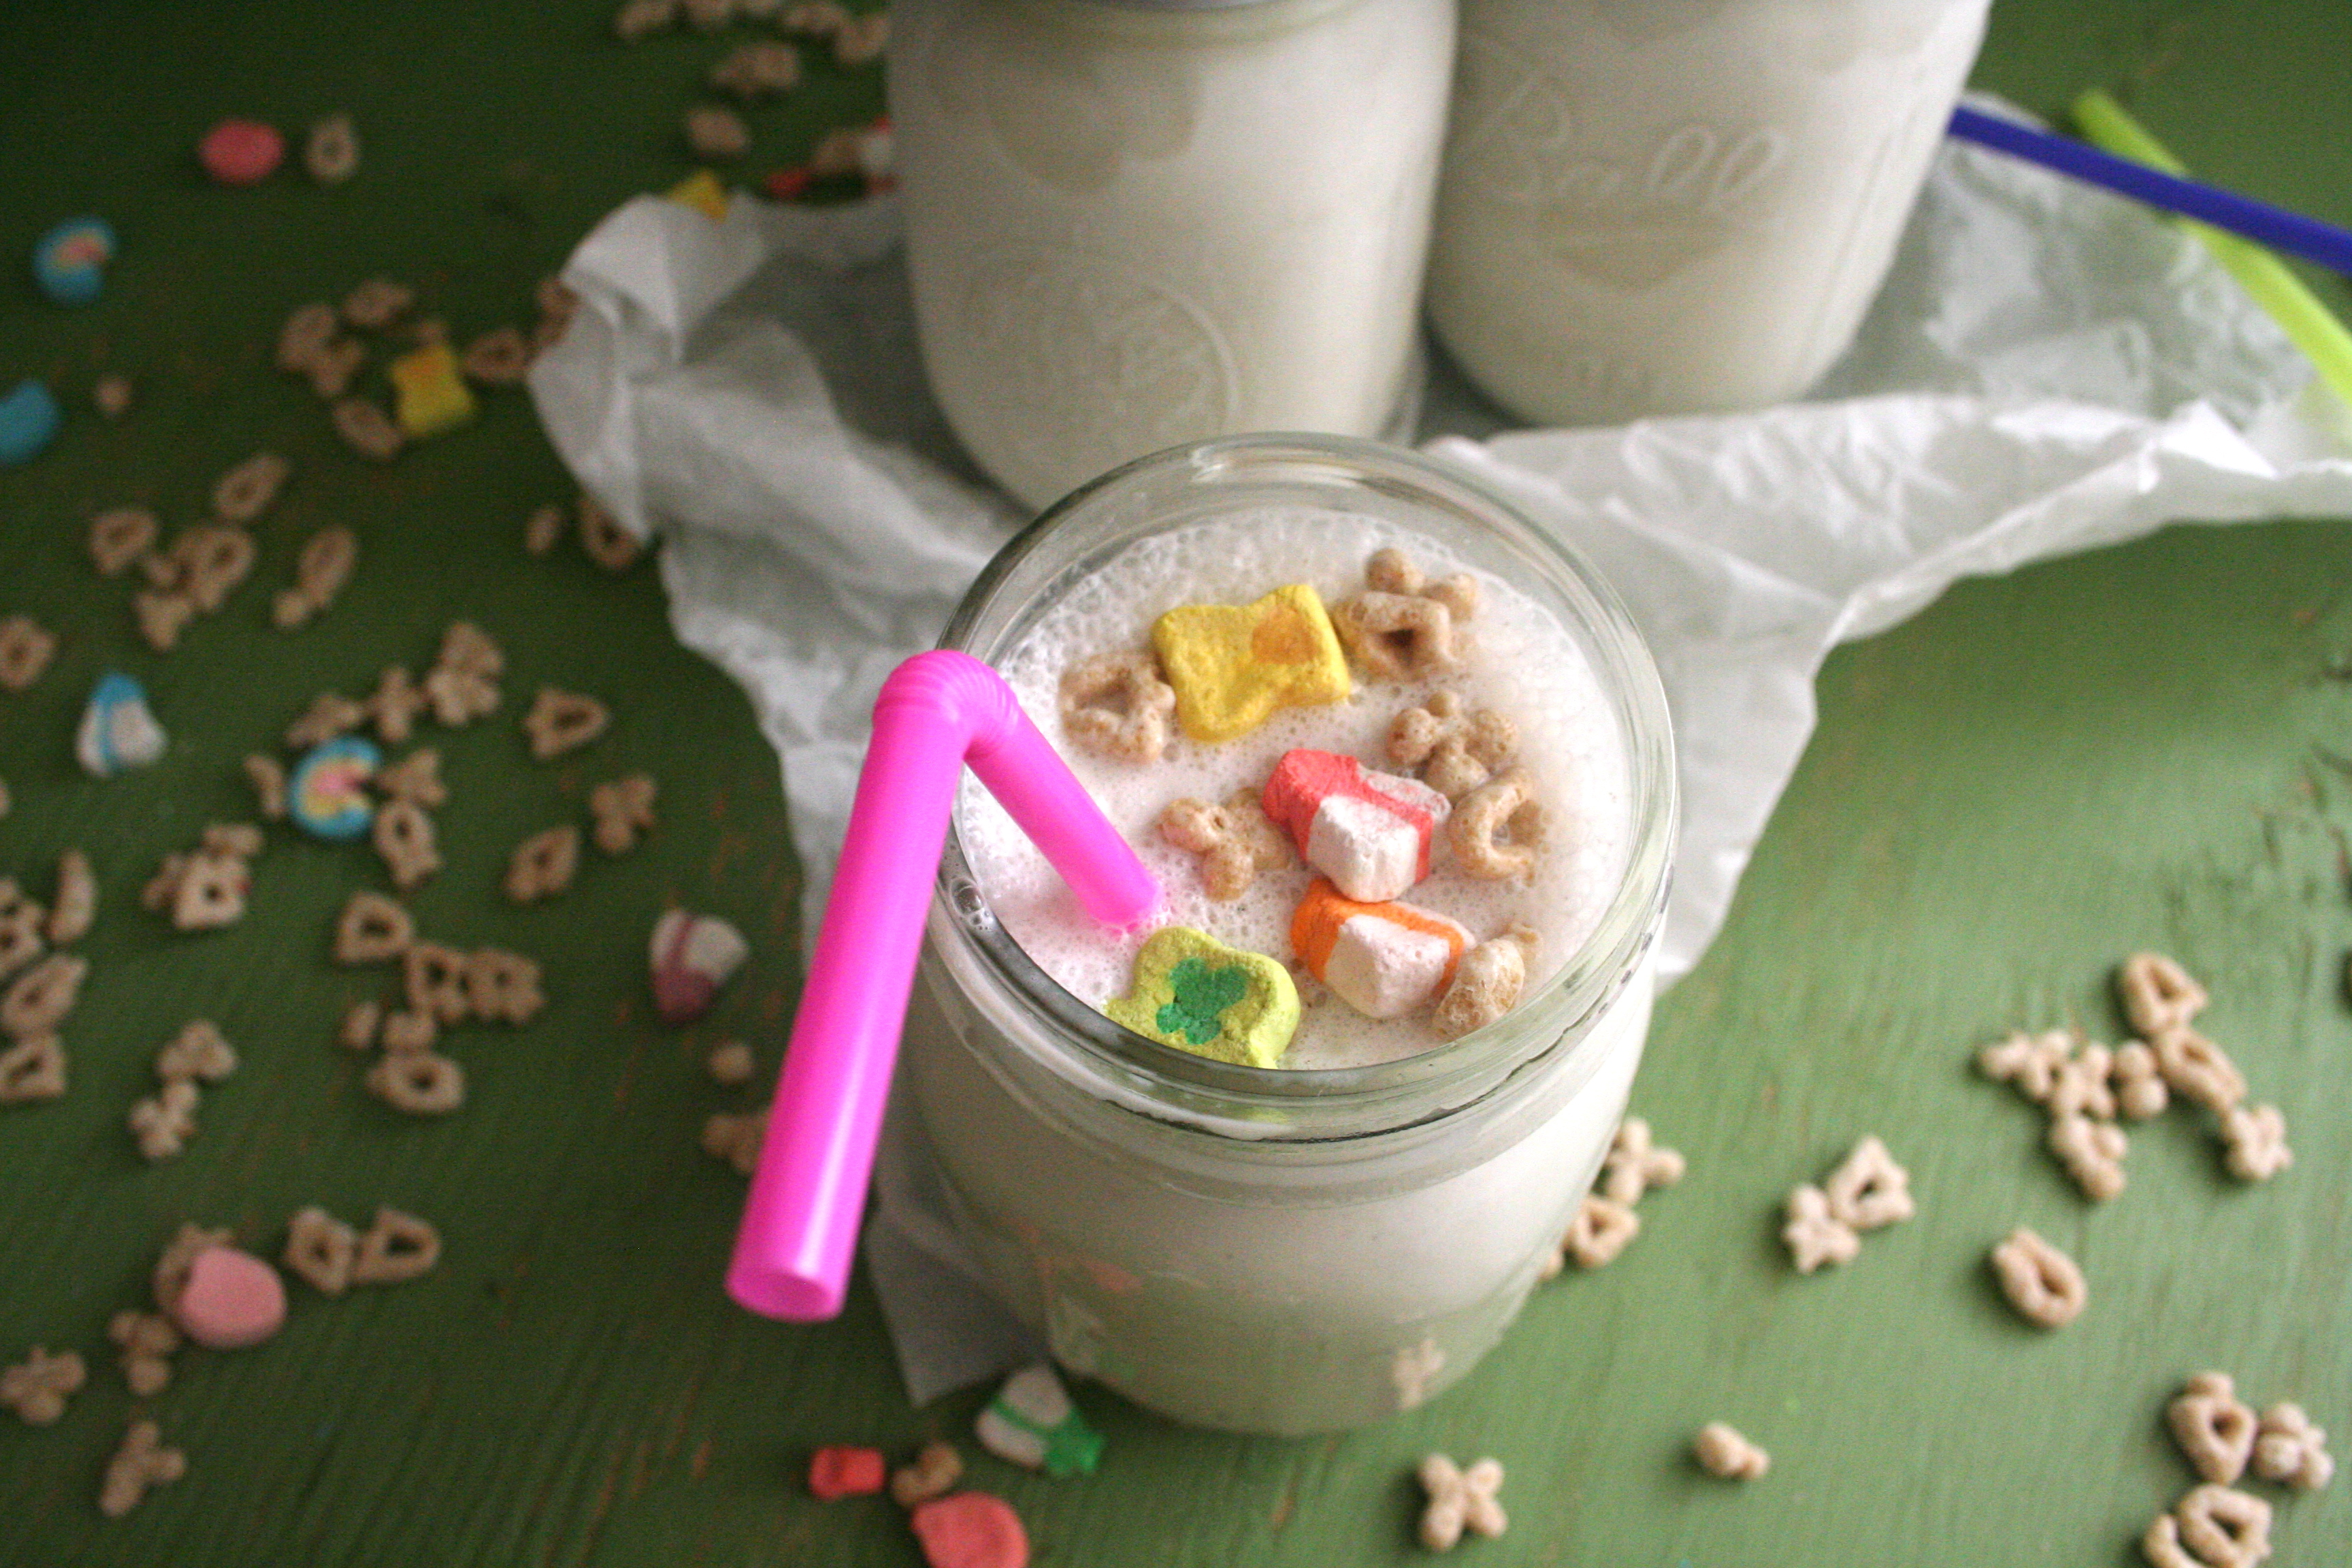 Not quite kid friendly spiked cereal milk shake a few months ago conan had pastry chef christina tosi of momofuku milk bar on the show during the episode she taught conan how to make cereal milk white ccuart Choice Image